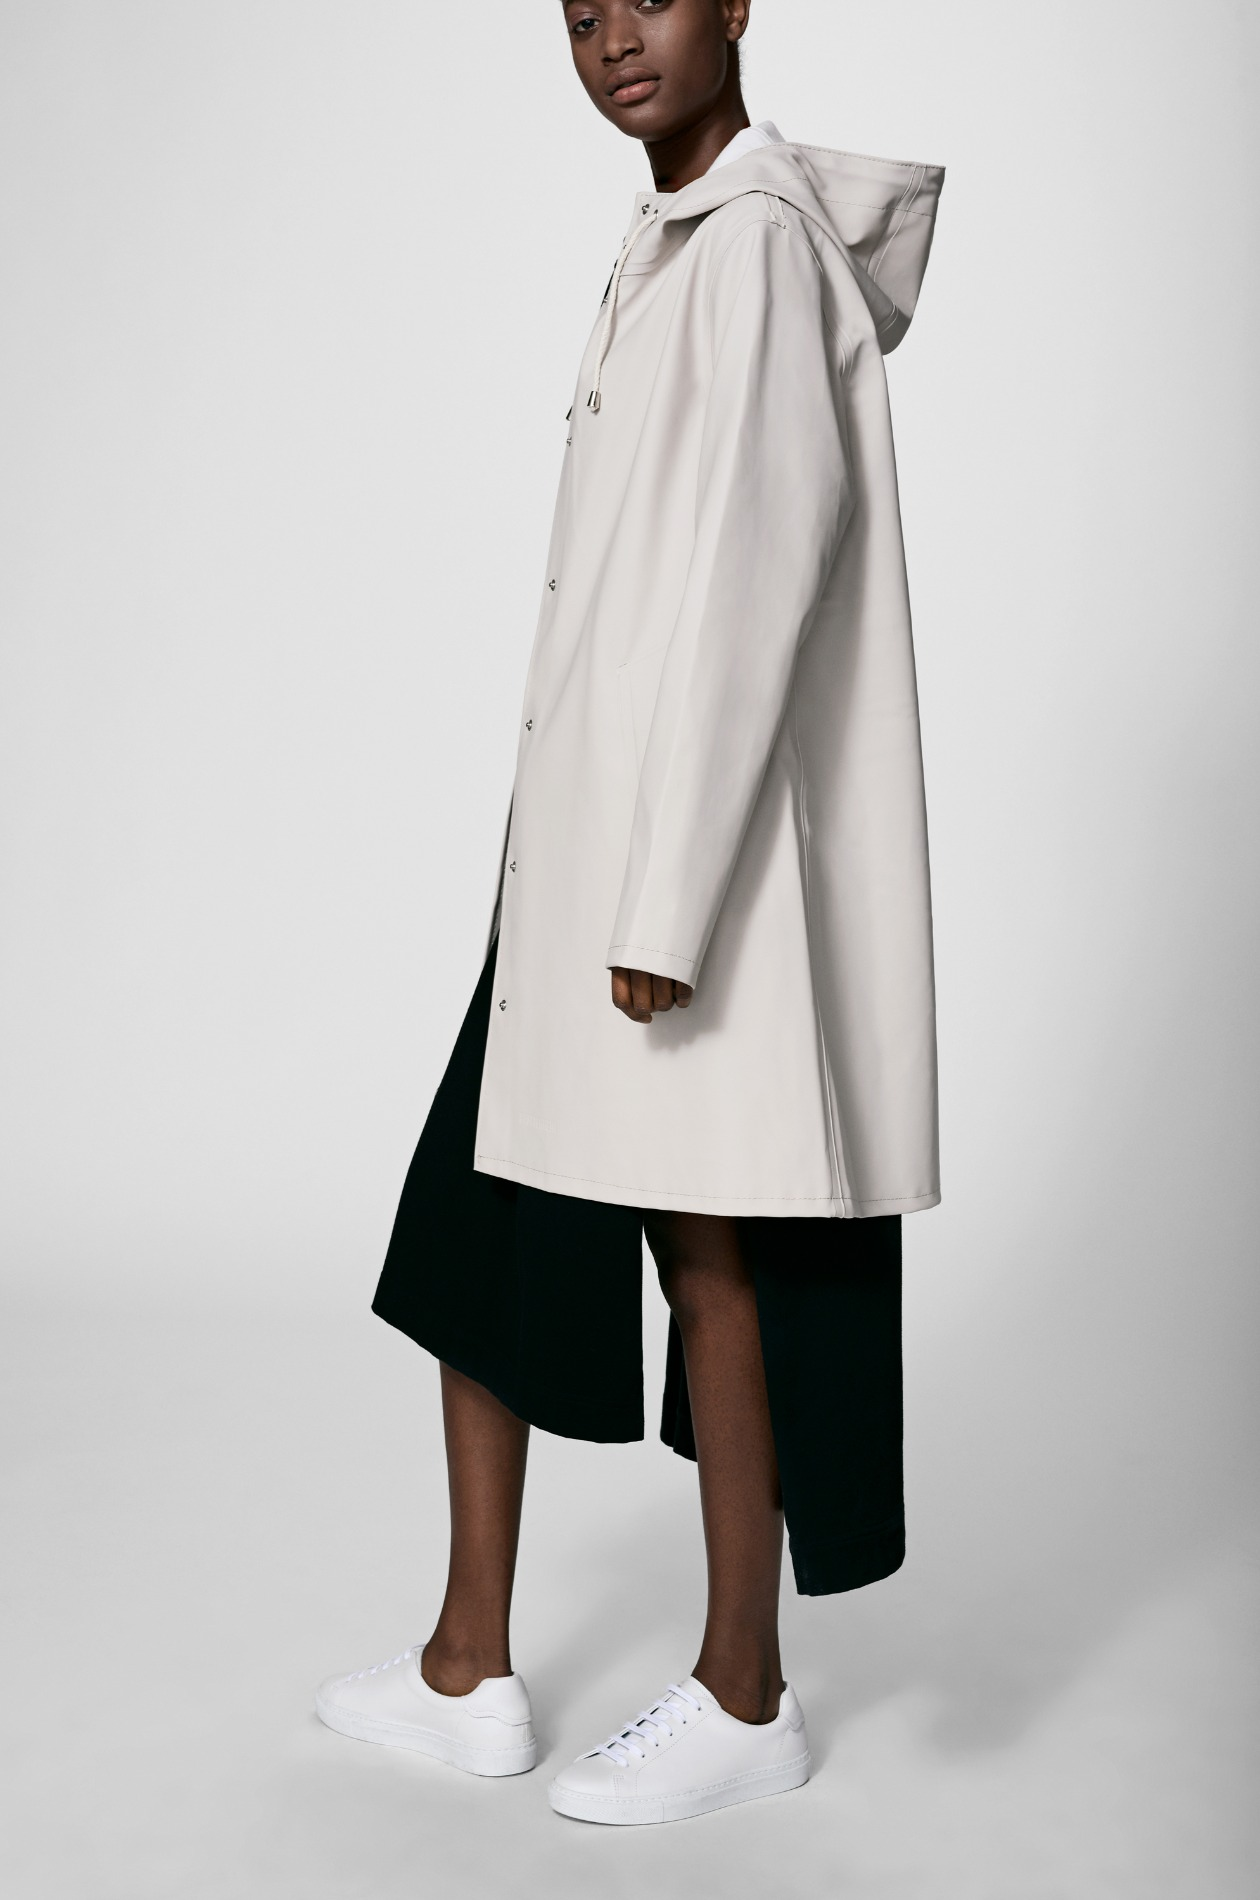 Designer Rainwear to Brave the Elements This Fall